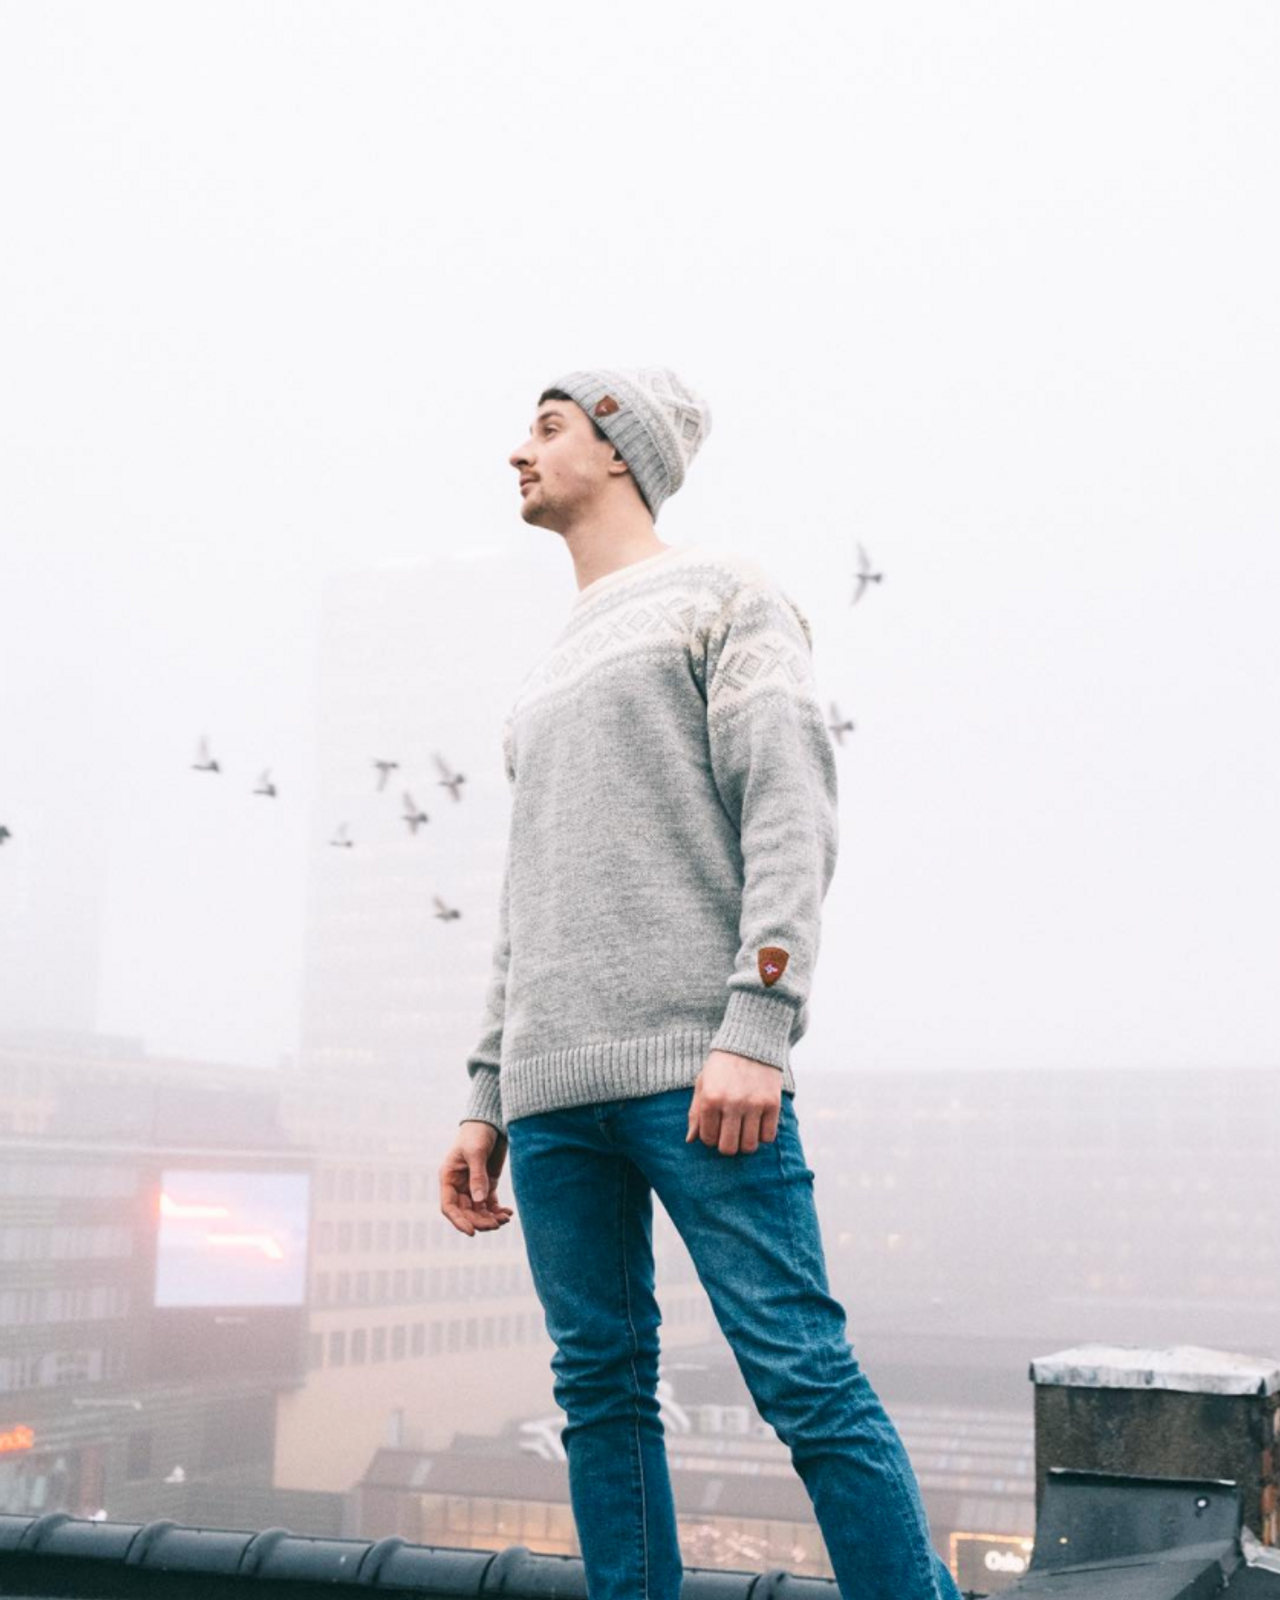 Man on Oslo rooftop wearing Dale of Norway Cortina 1956 sweater in Light Charcoal/Off White, 92521-E, and Cortina hat in Off White/Light Charcoal, 42261-E